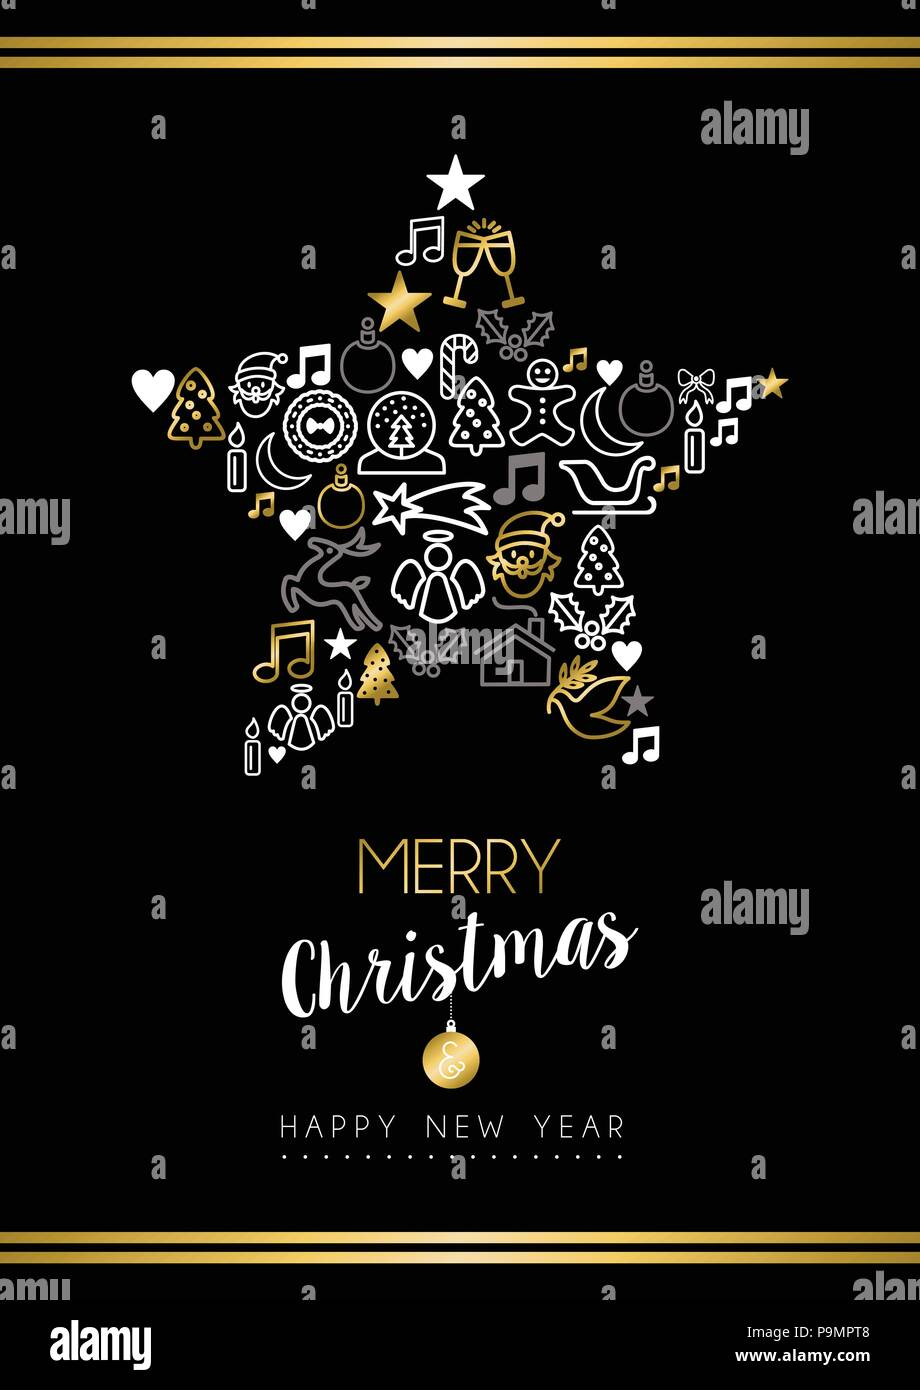 Weihnachtsbilder Merry Christmas.Merry Christmas And Happy New Year Greeting Card Holiday Decoration